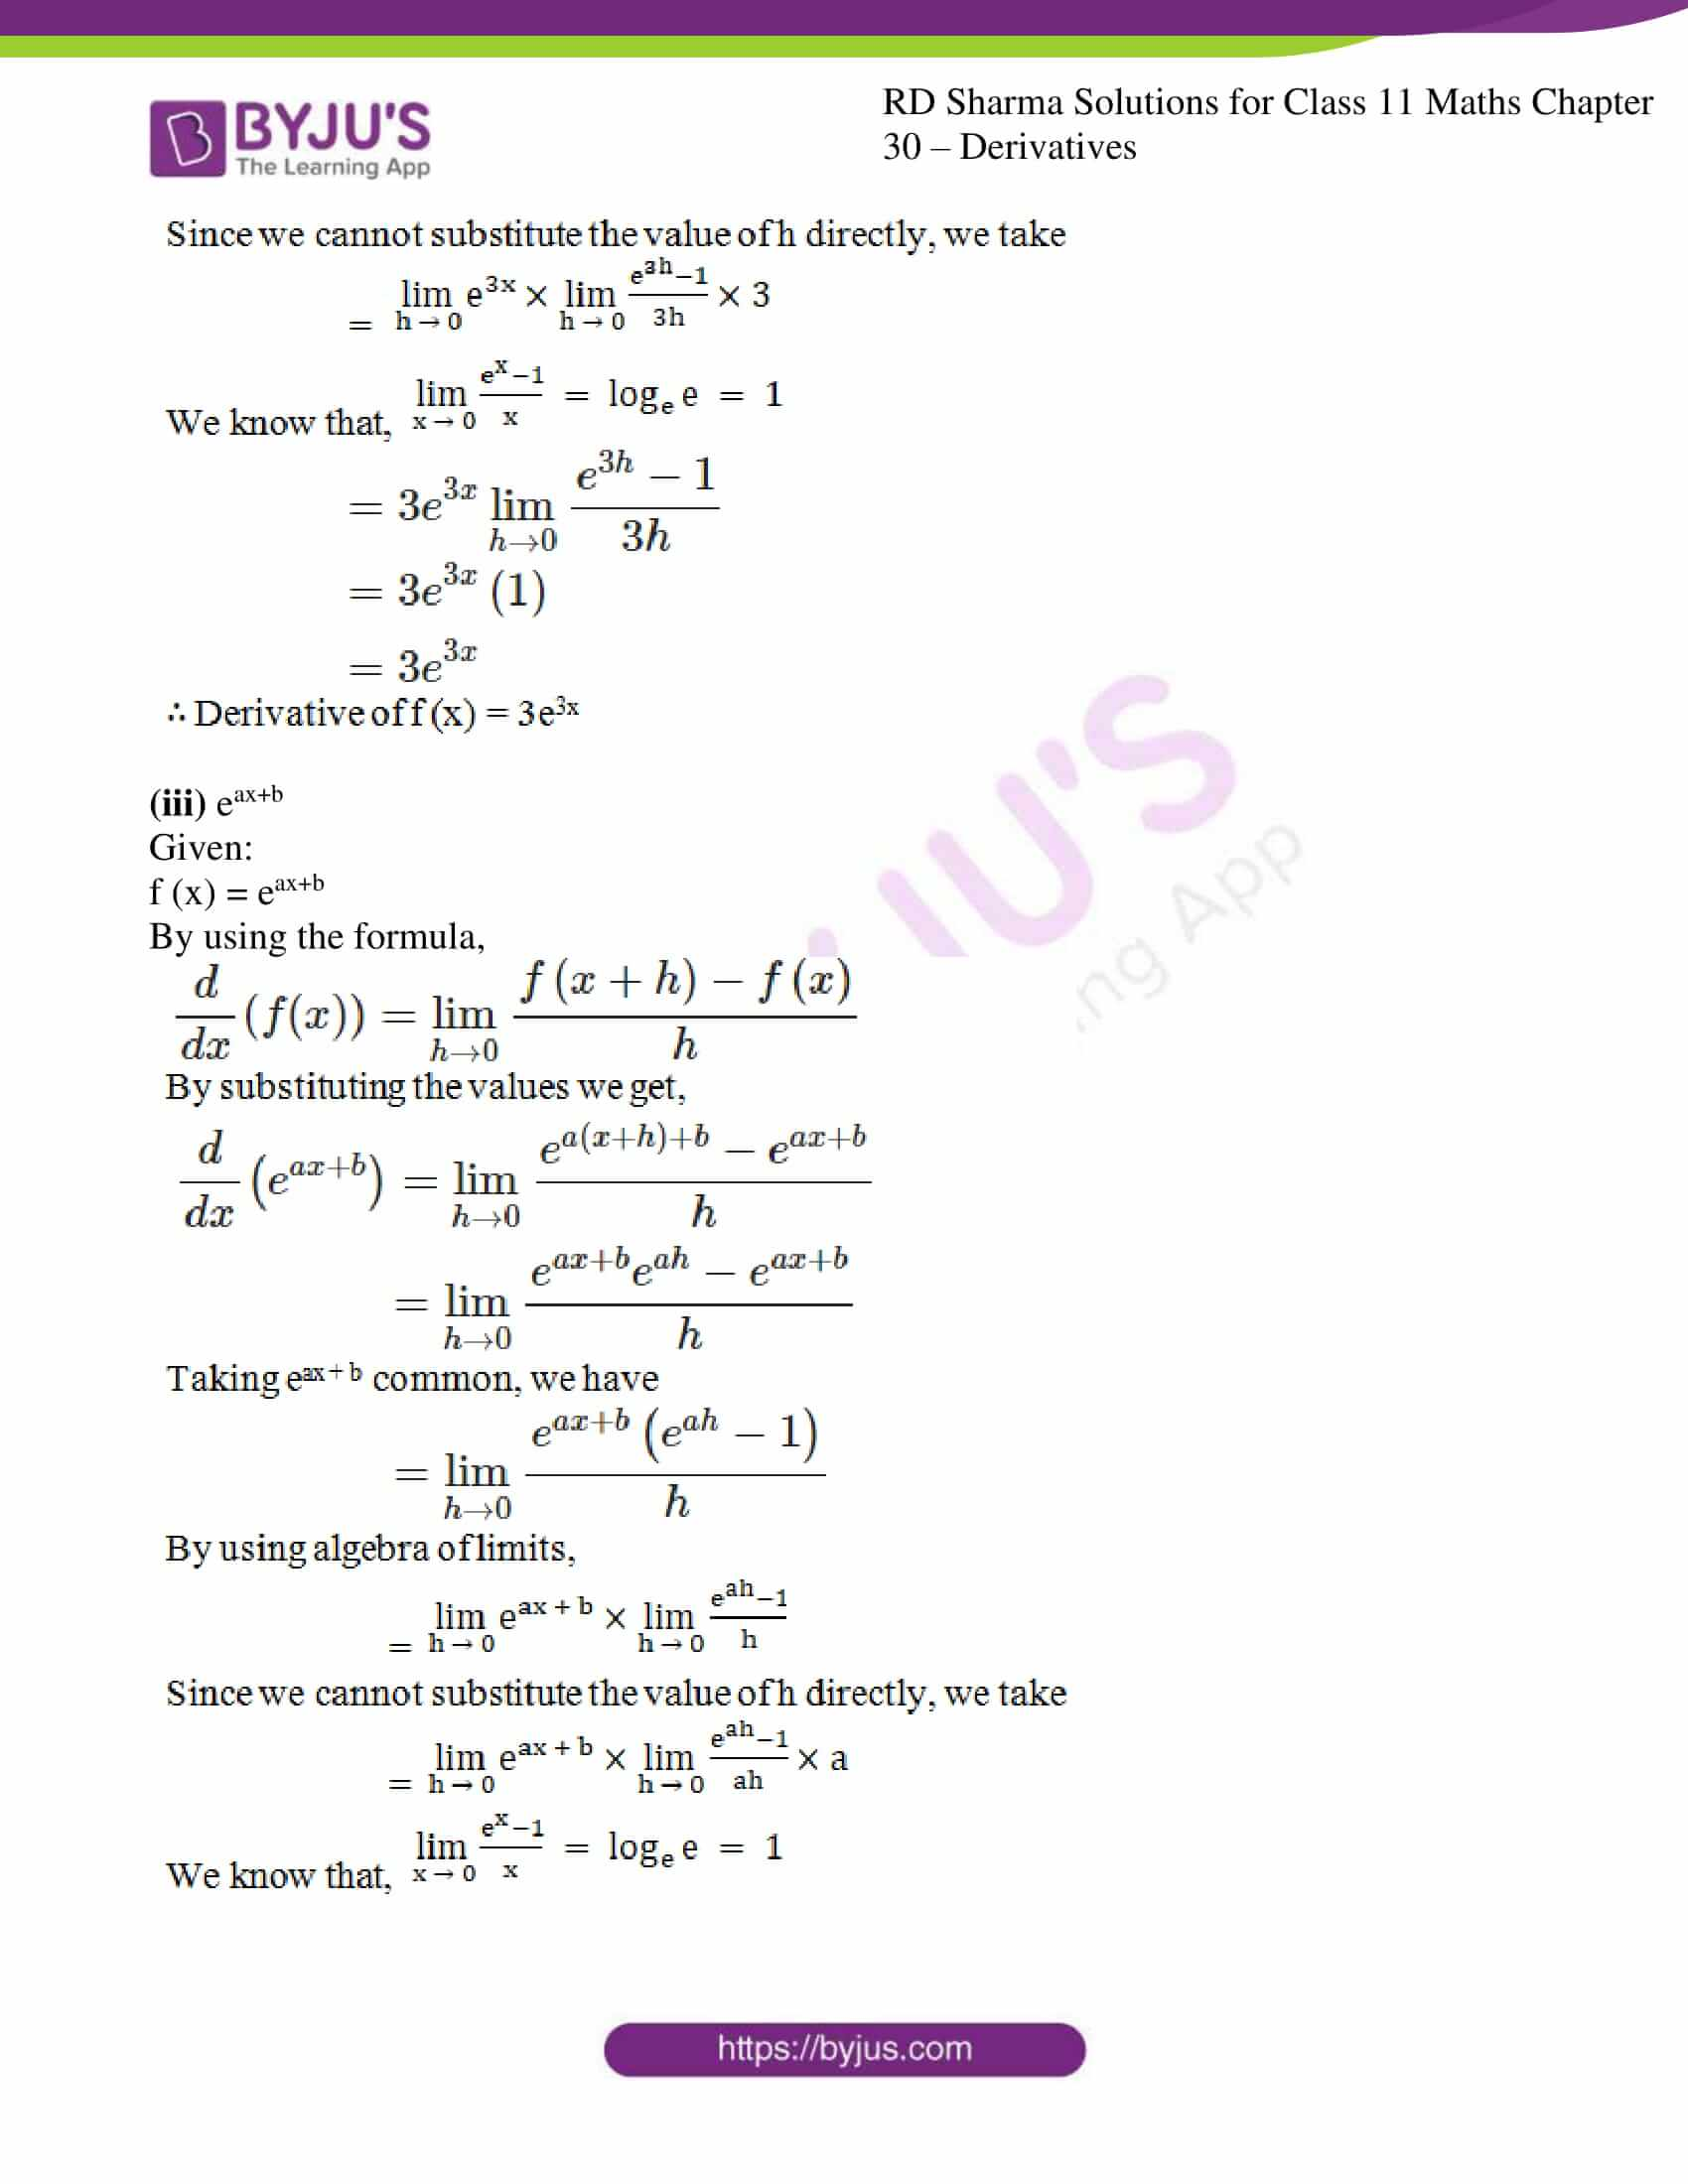 rd sharma class 11 maths chapter 30 ex 2 07